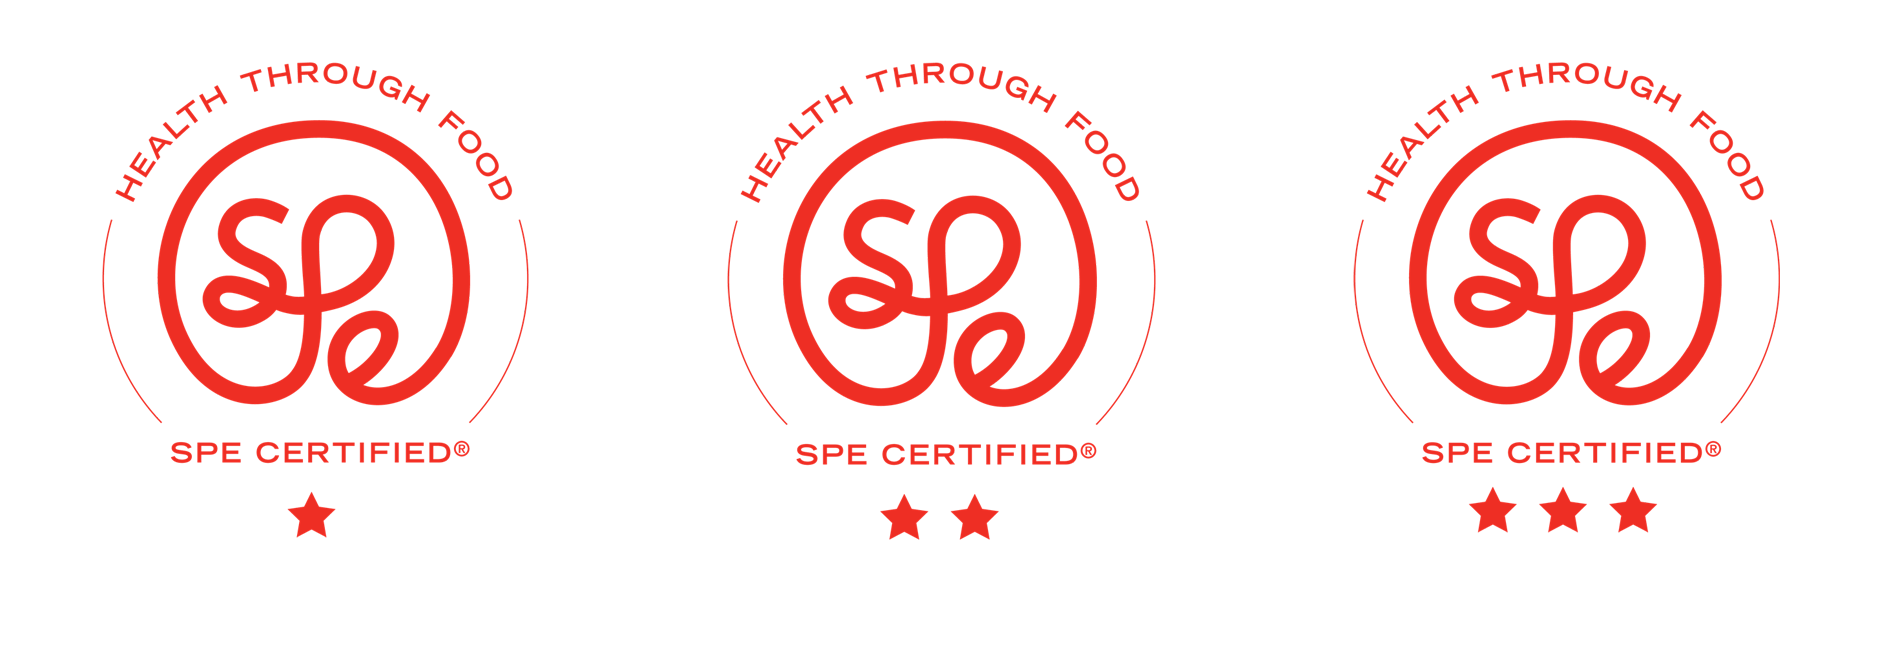 Restaurant Consulting Group Nutritionally Certified Healthy Dining